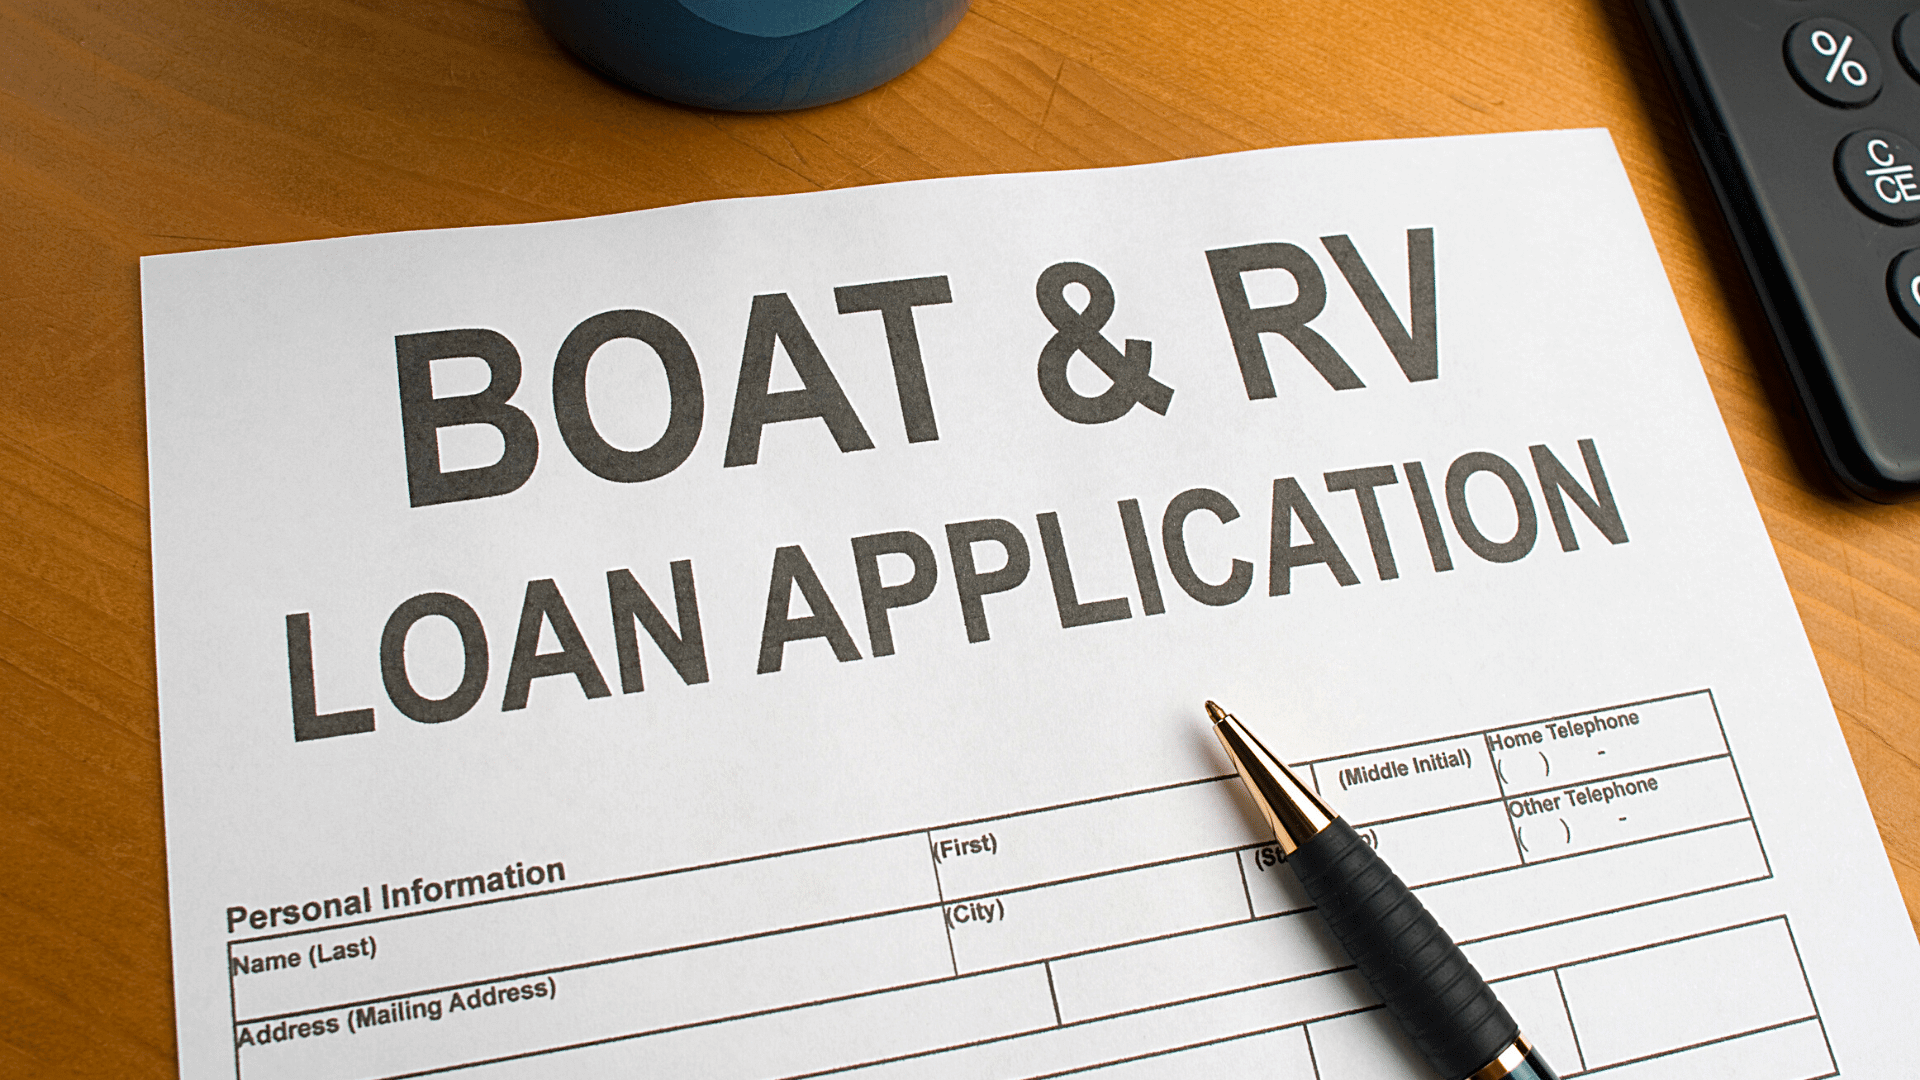 RV Financing documents for an RV loan